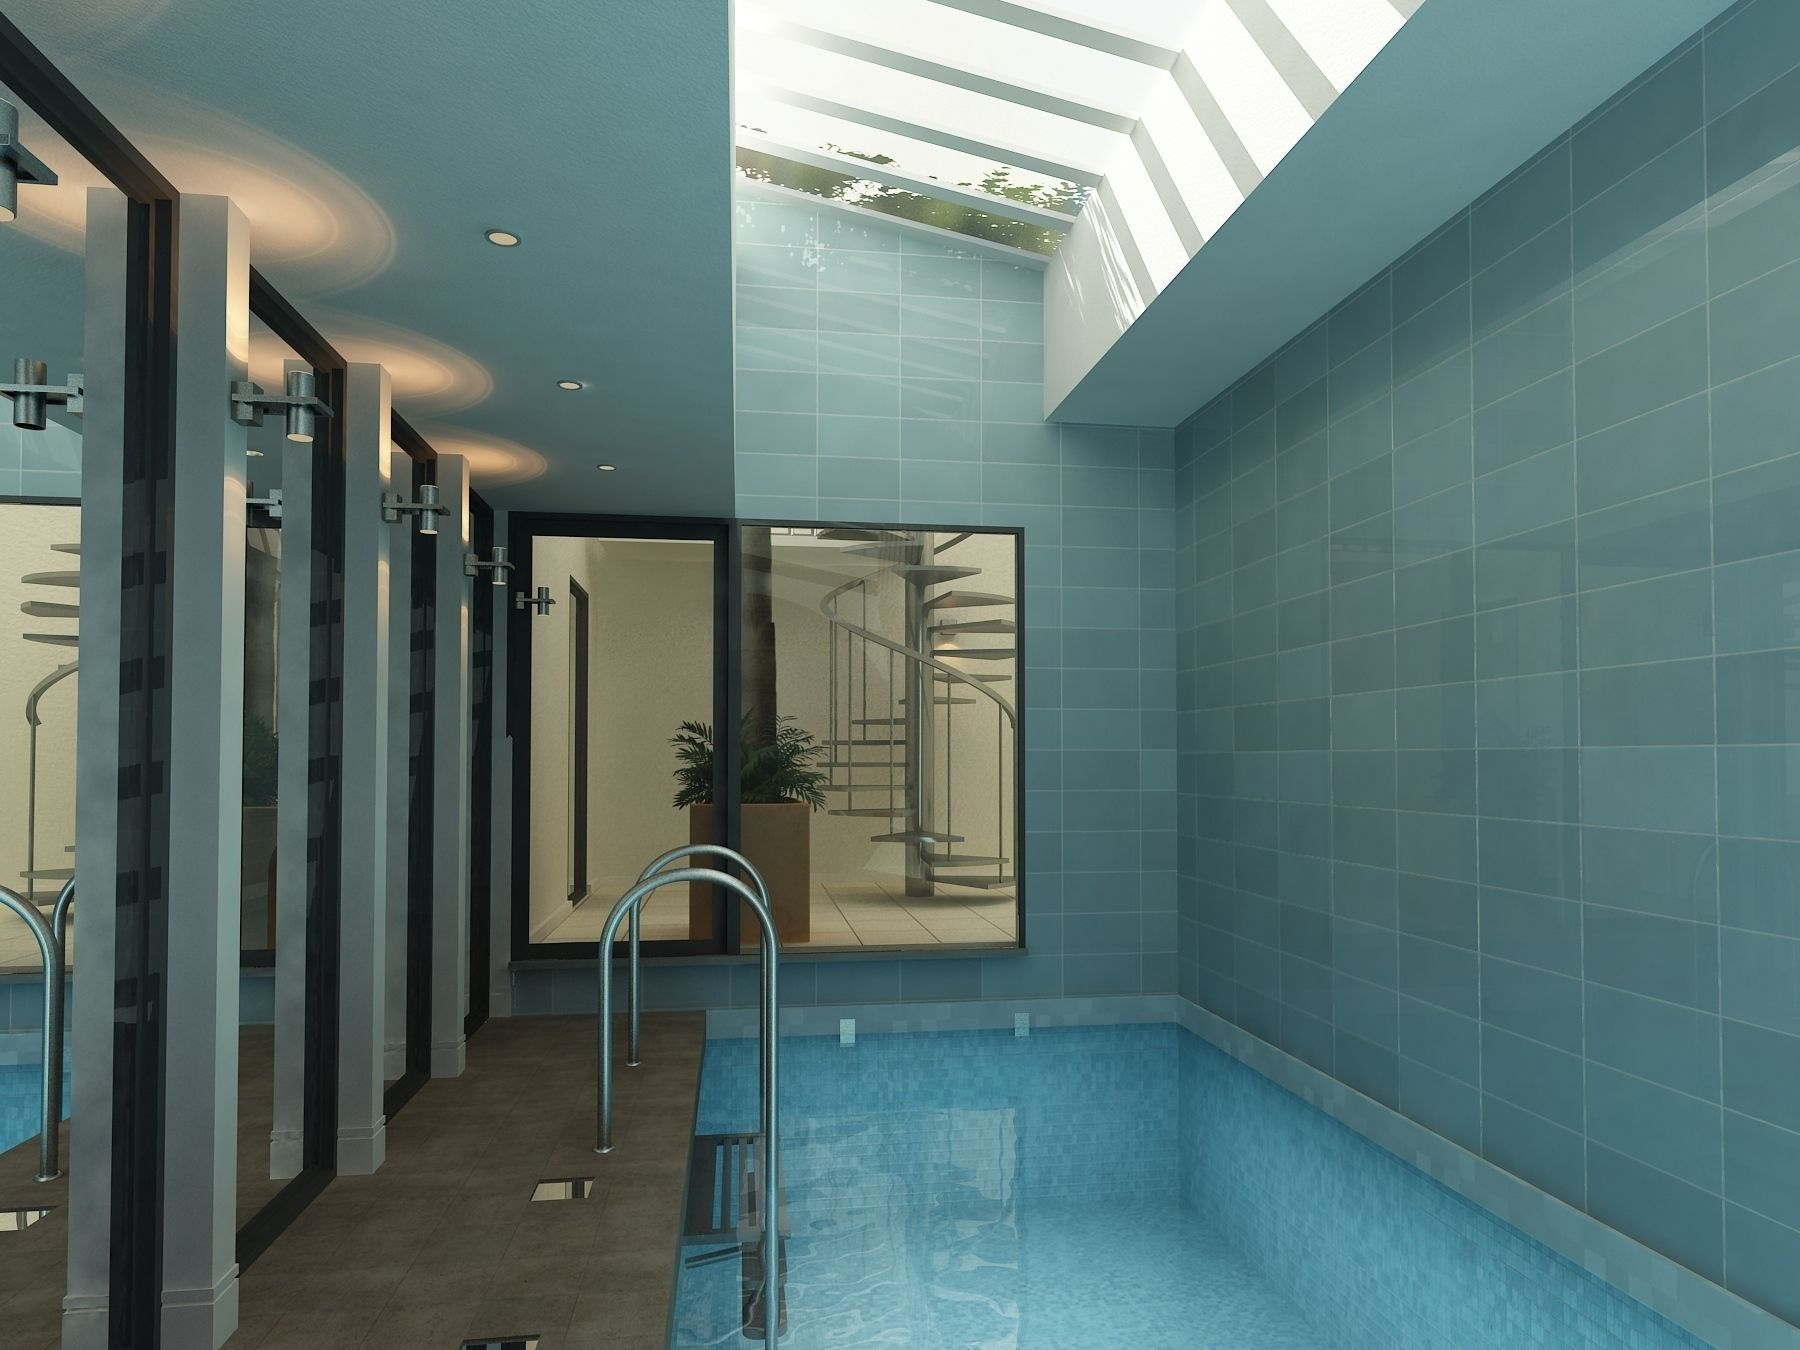 two_indoor_pools_3d_model_max_f9ecf753-b830-4230-9b2e-854027e46796.jpg